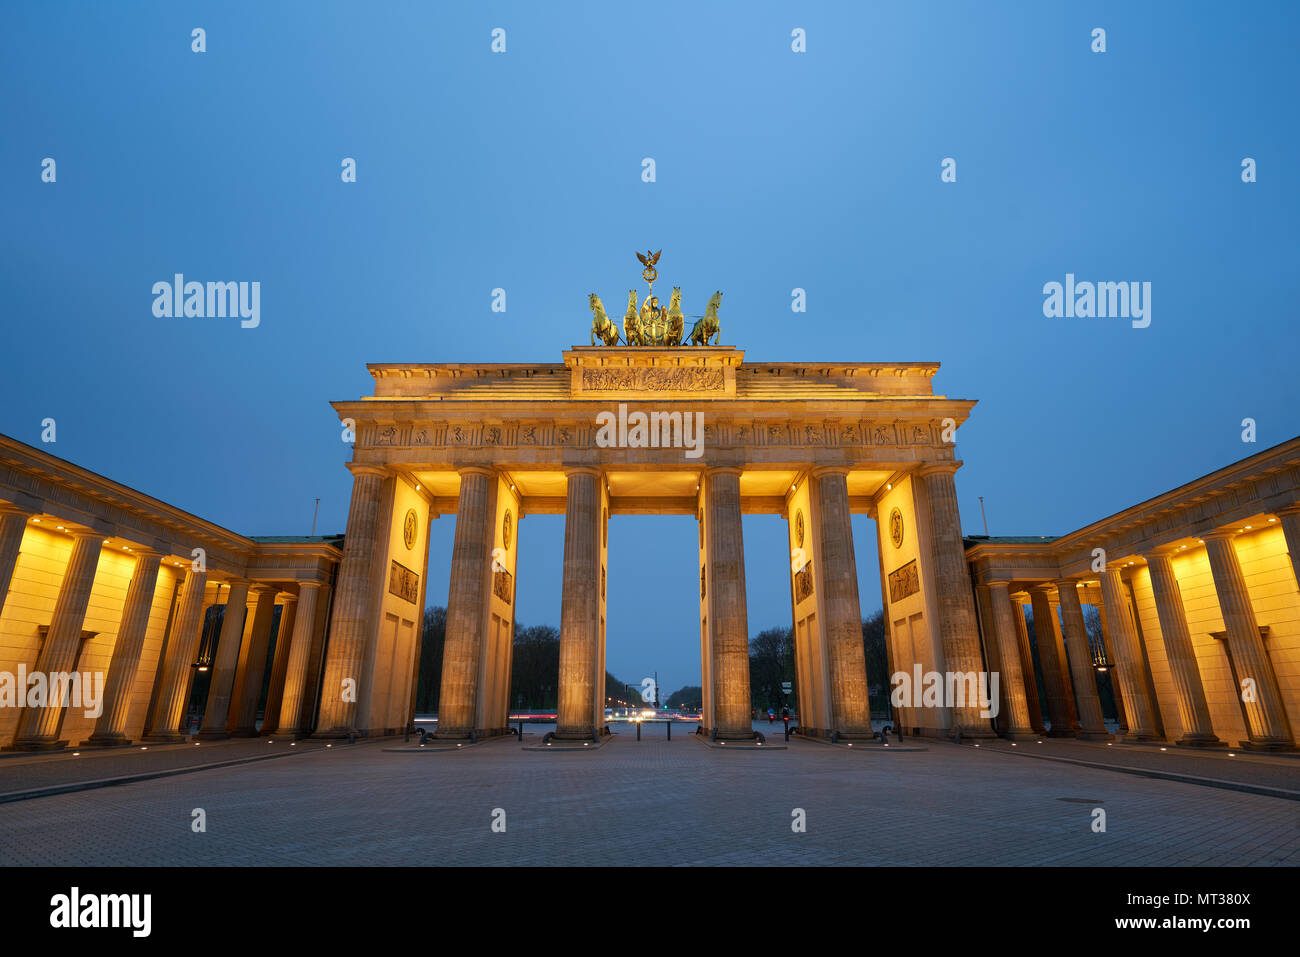 Berlin, Germany - April 4, 2017: Brandenburg Gate at sunrise in Berlin - Stock Image